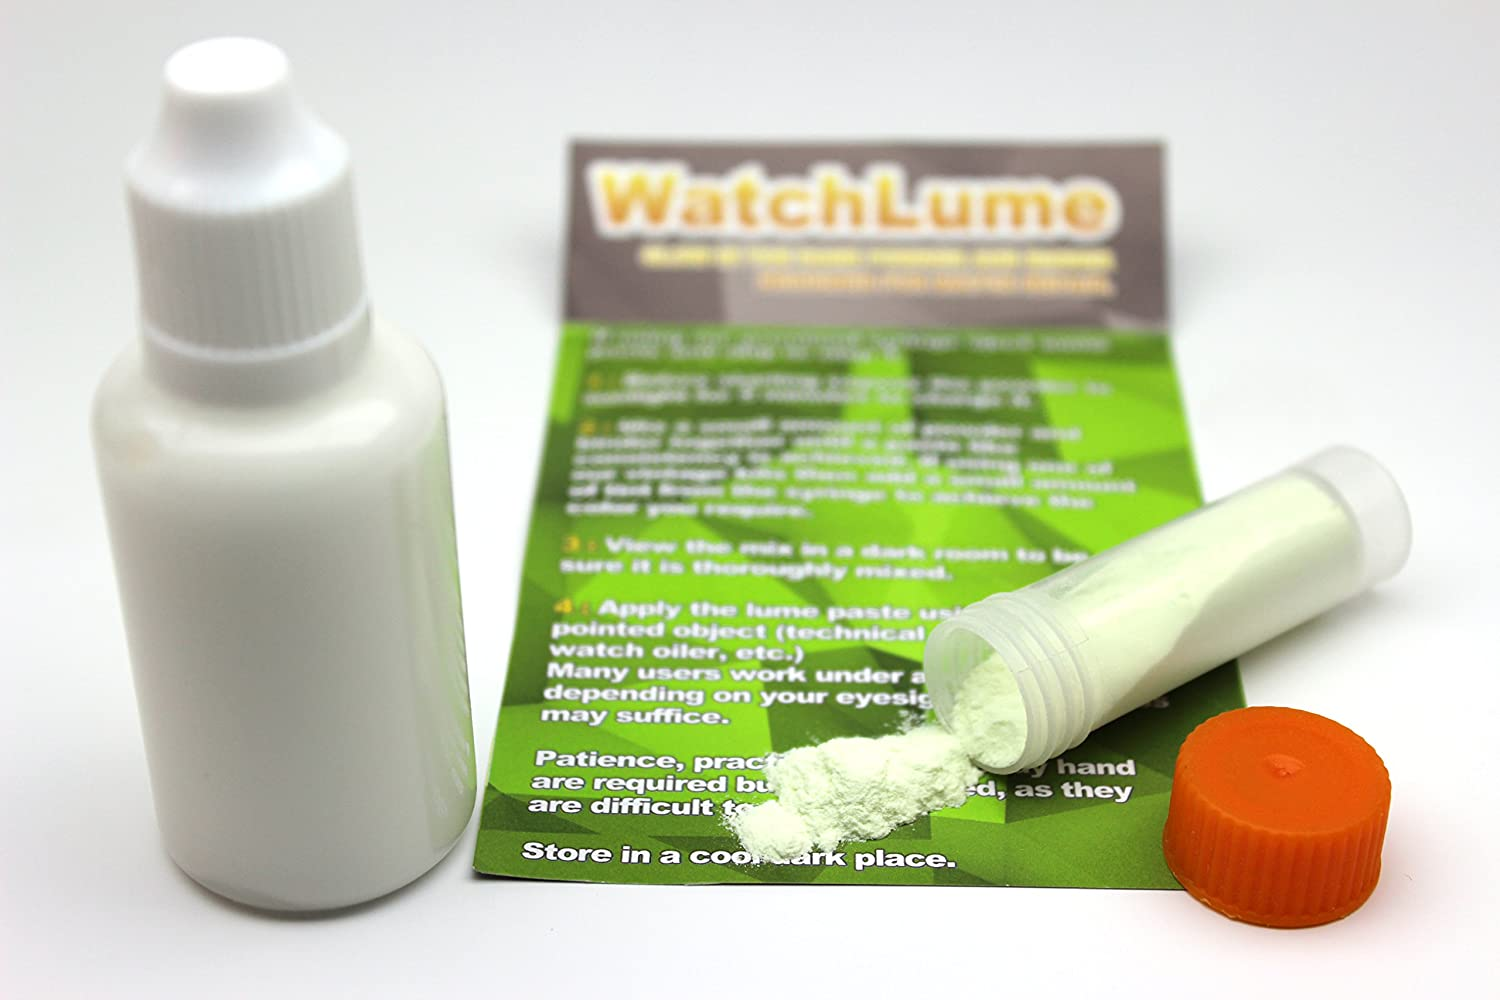 GLOW IN THE DARK WATCH LUME FOR WATCH DIAL AND HAND RELUMING. GREEN. 7 GRAMS. 30ML